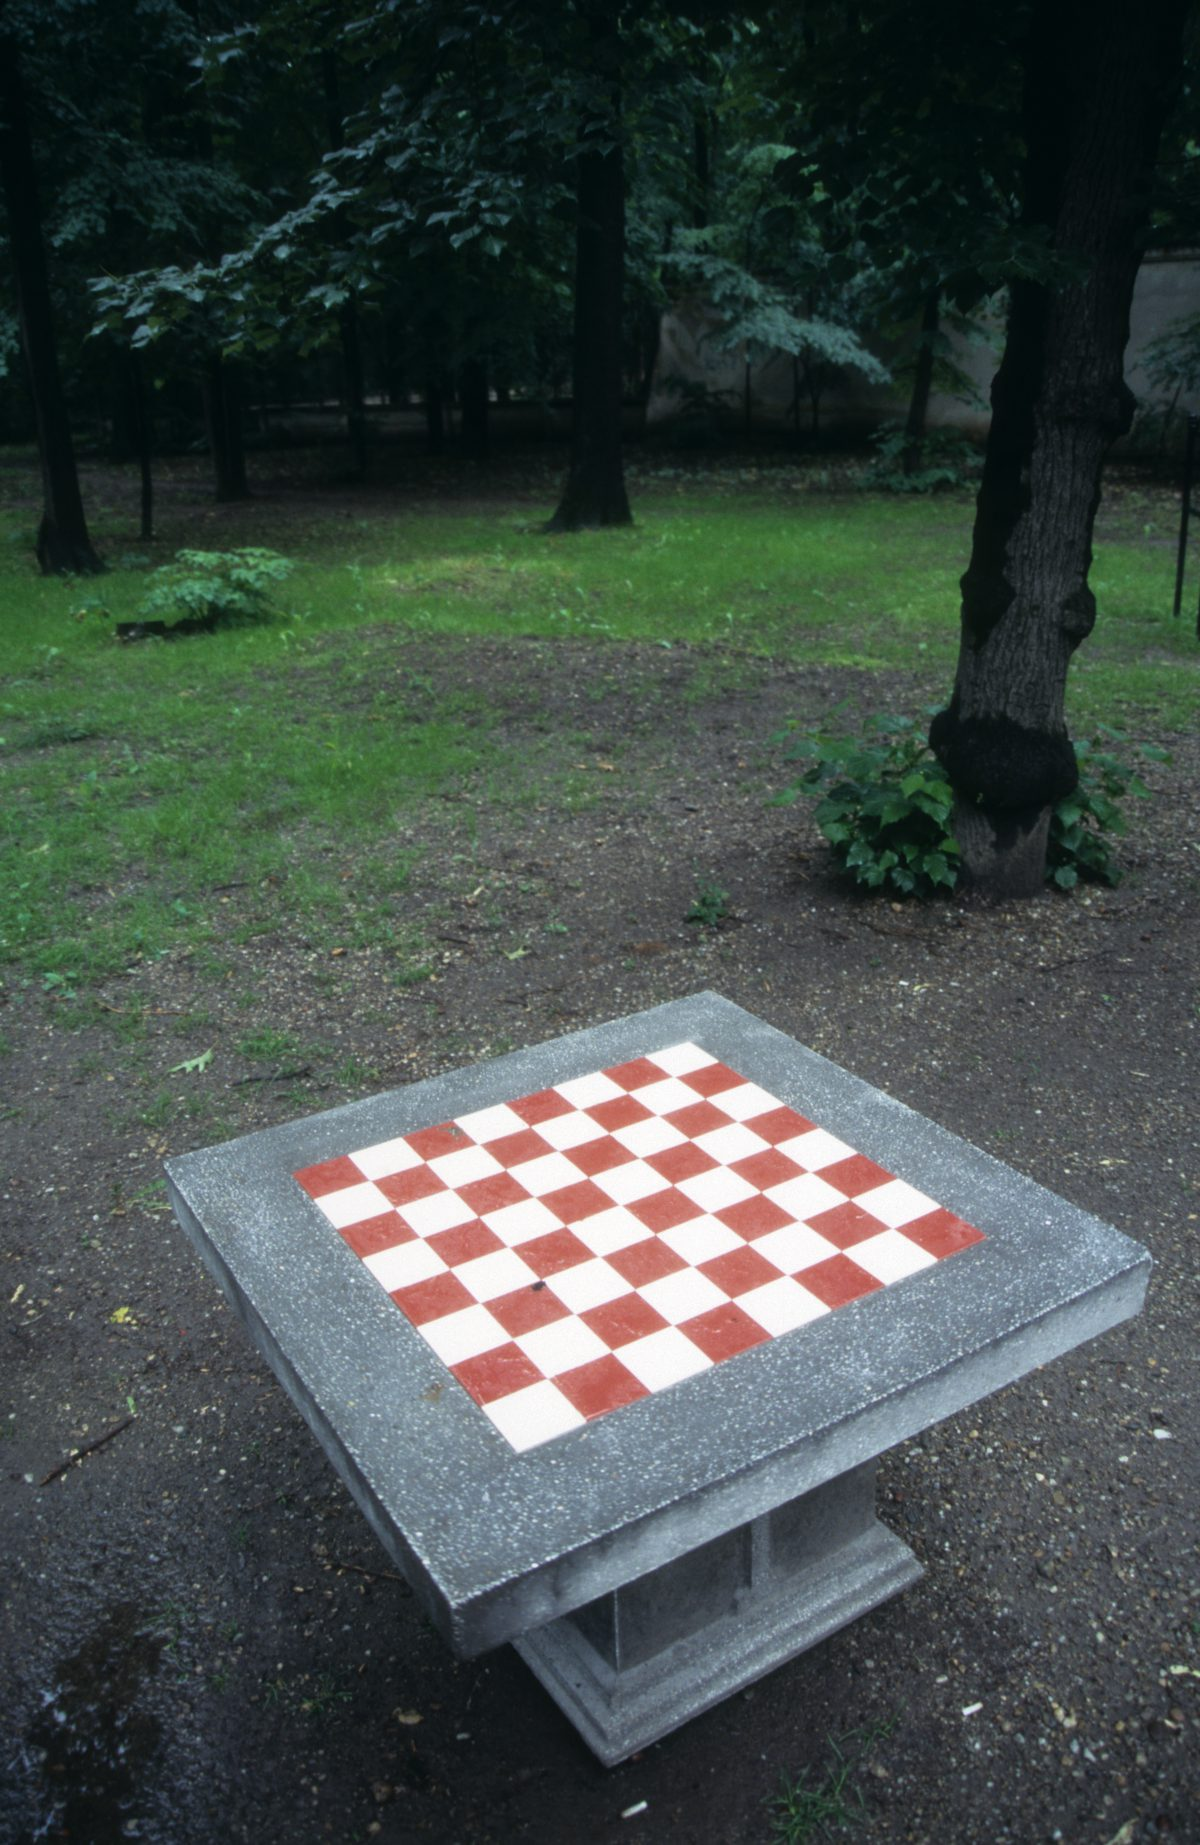 Chessboard, game